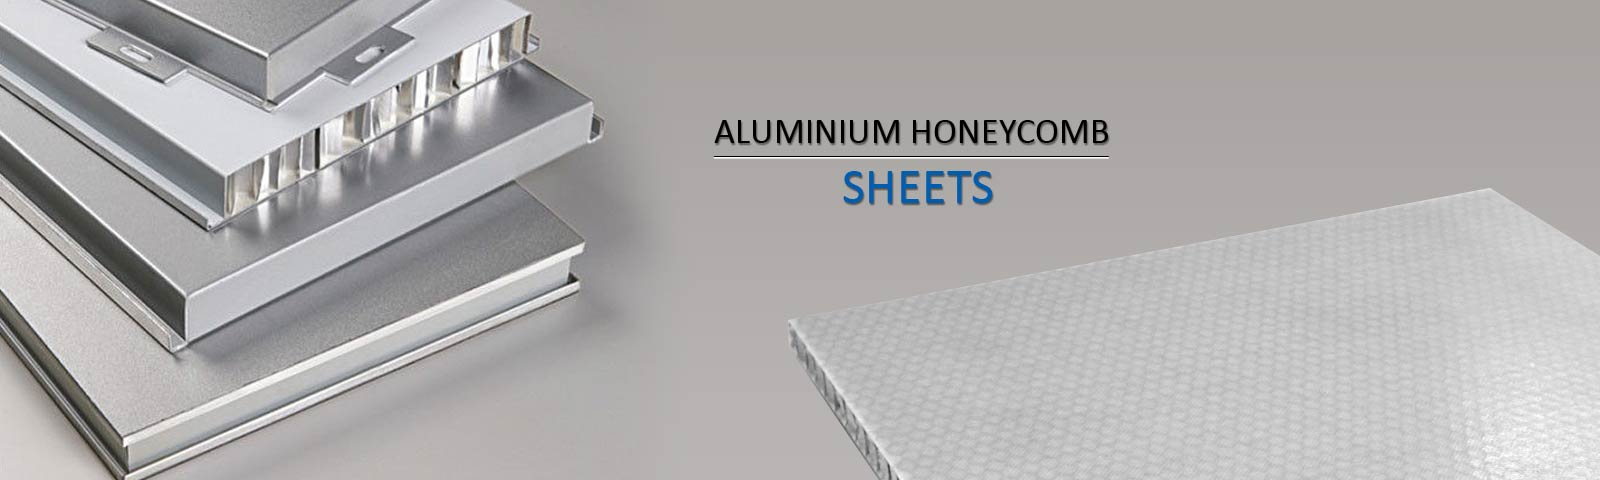 Aluminium Honeycom Sheets Manufacturer and Supplier in Gautam Buddha Nagar